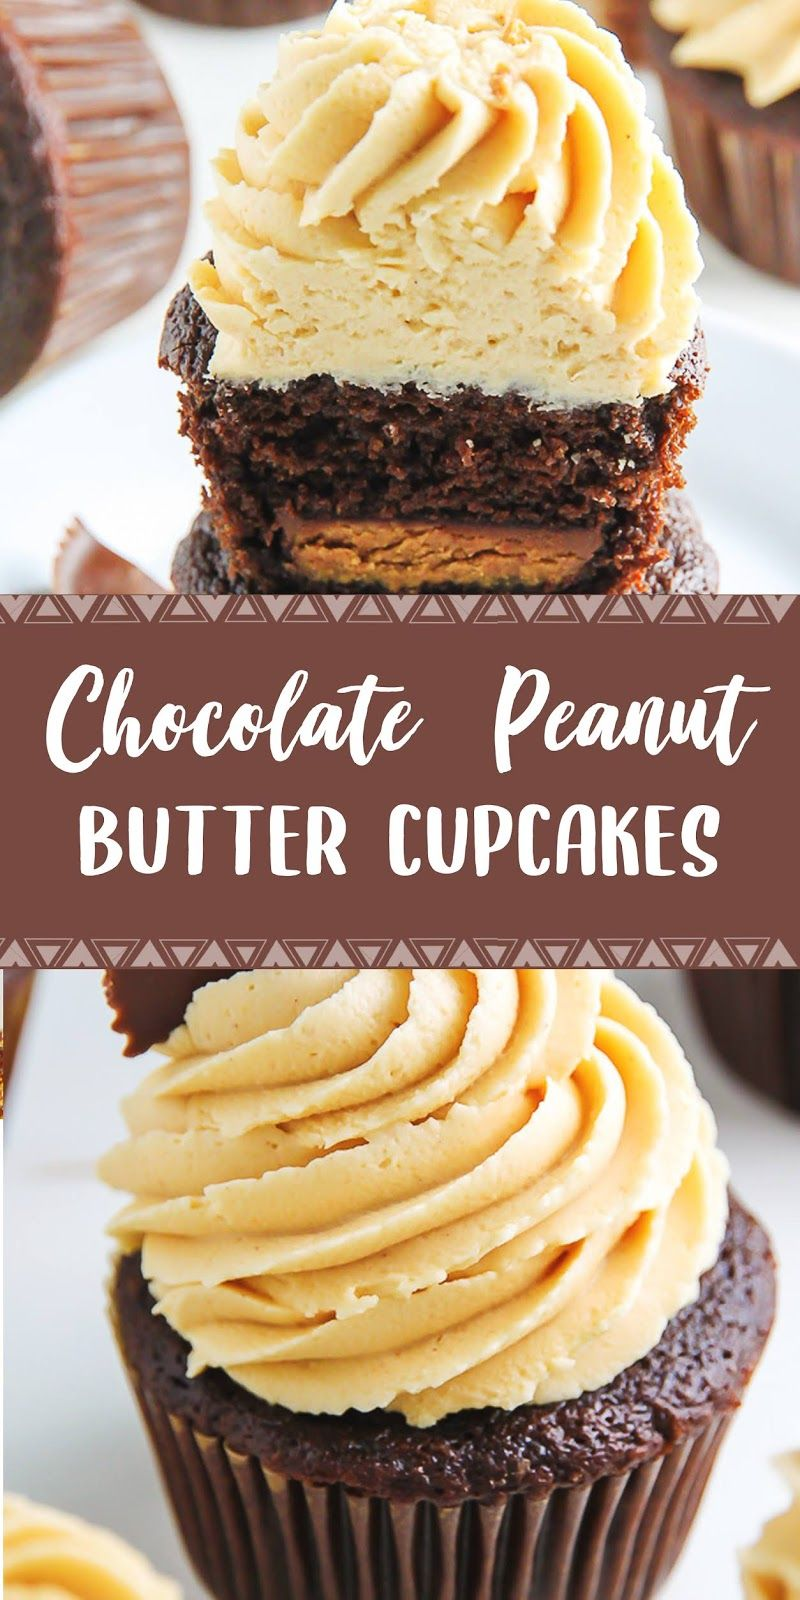 #desserts #dessertrecipes #desserttable #dessertfoodrecipes#dinner #easydinnerrecipe #chickenrecipes #recipeoftheday #chicken #chickenfoodrecipes #chickenhouses #chickendinner #healthyrecipes #healthyfood #healthyeating #recipeseasy #popular #womenIngredientsFor the Chocolate Cupcakes:3 tablespoons coconut OR canola oil1 stick unsalted butter, melted and slightly cooled1/2 cup semi-sweet chocolate chips3/4 cup + 2 tablespoons all-purpose flour, not packed1/2 teaspoon baking soda1 teaspoon baking